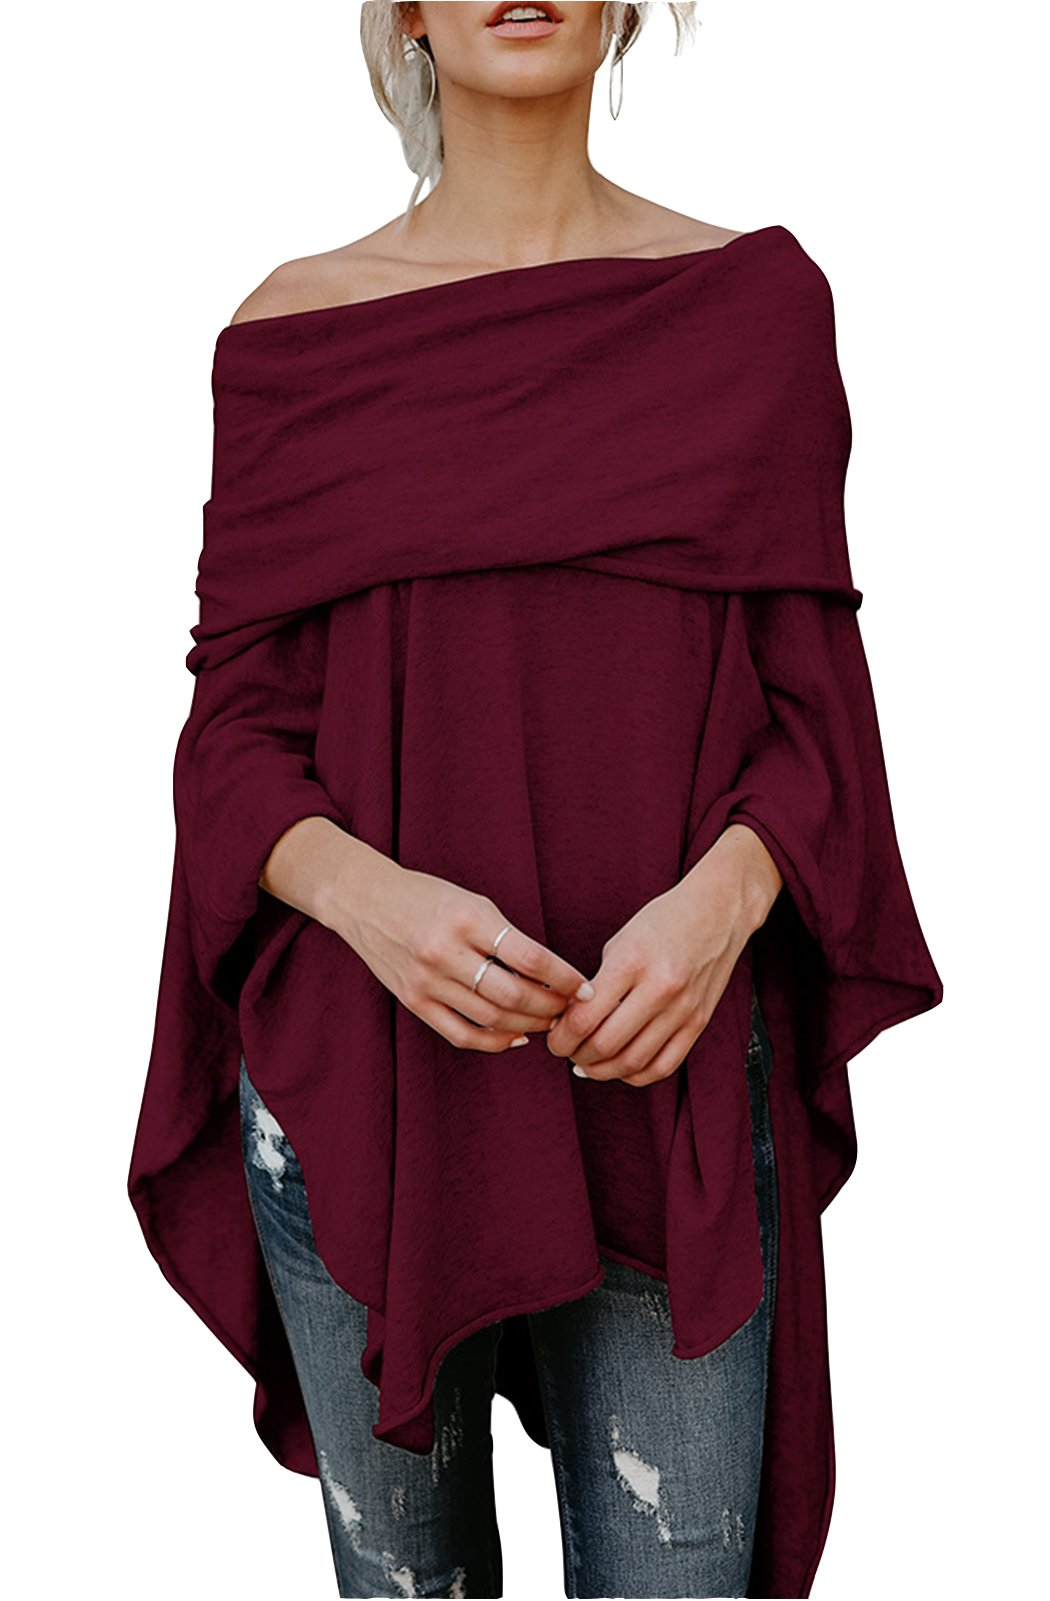 FOXRED Womens Off Shoulder Irregular Hem Soft Knitted Poncho Sweater Pullovers (Large, Wine Red)